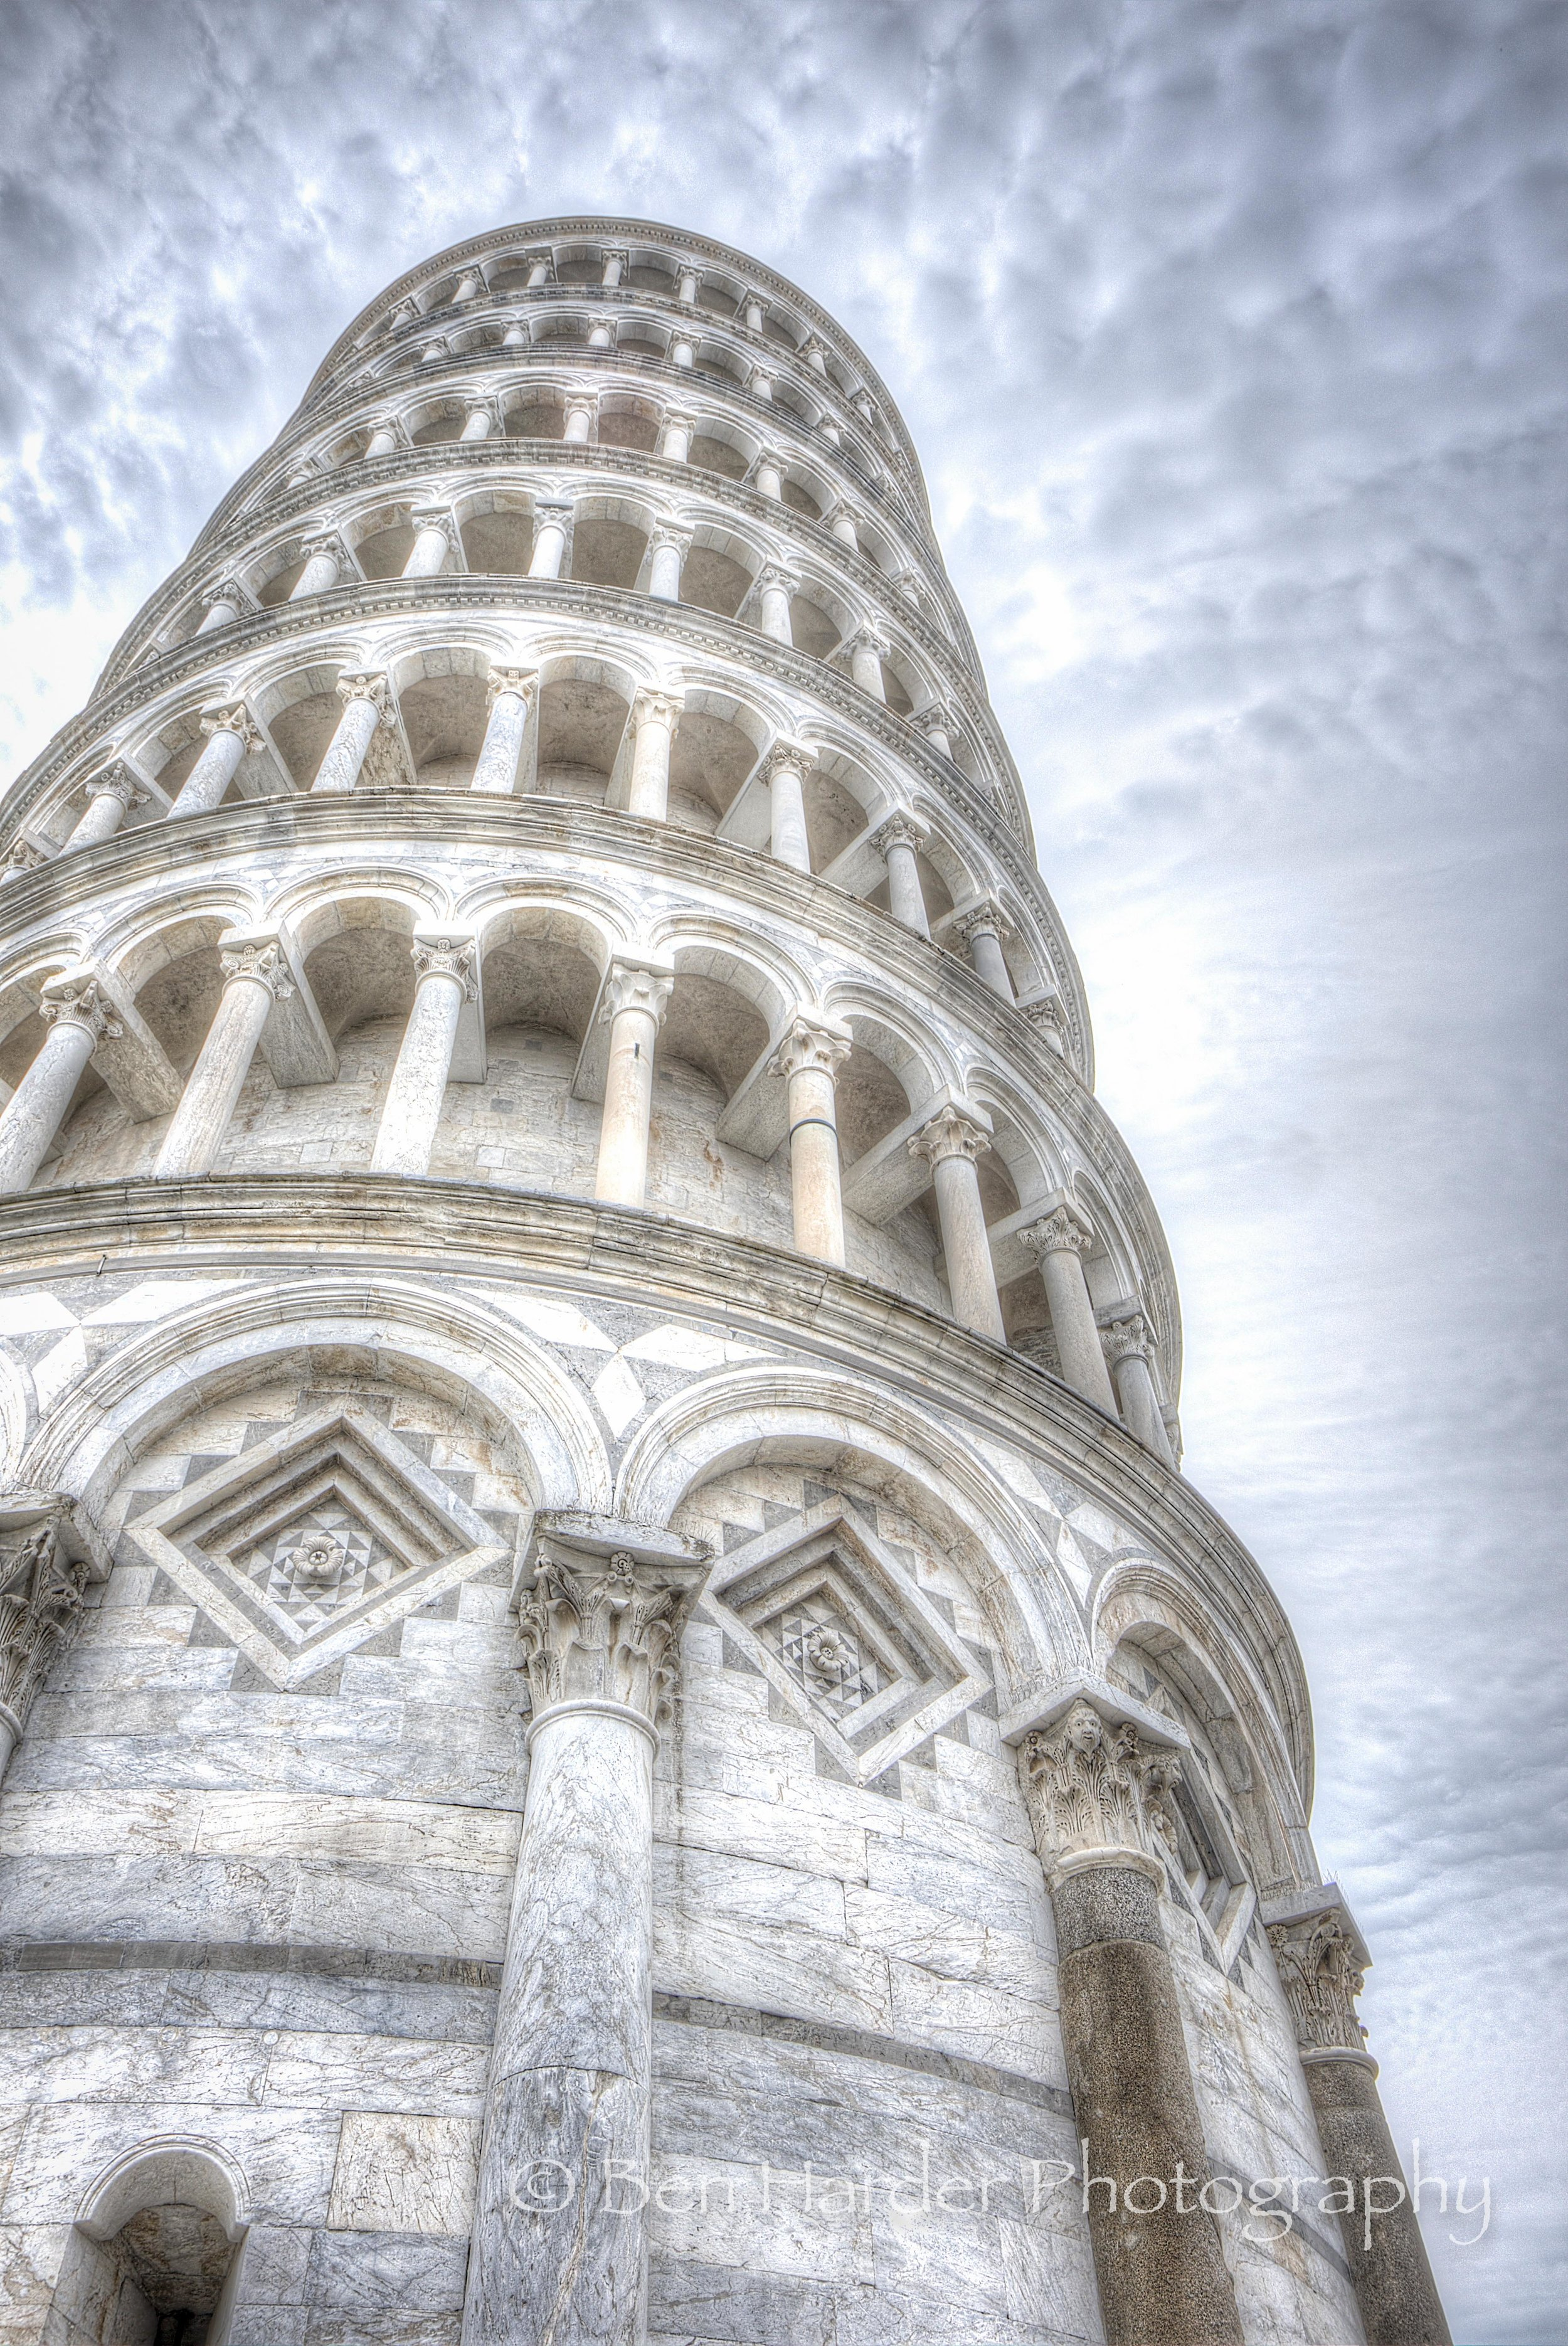 """A Little to the Left"" - Leaning Tower of Pisa, Italy"